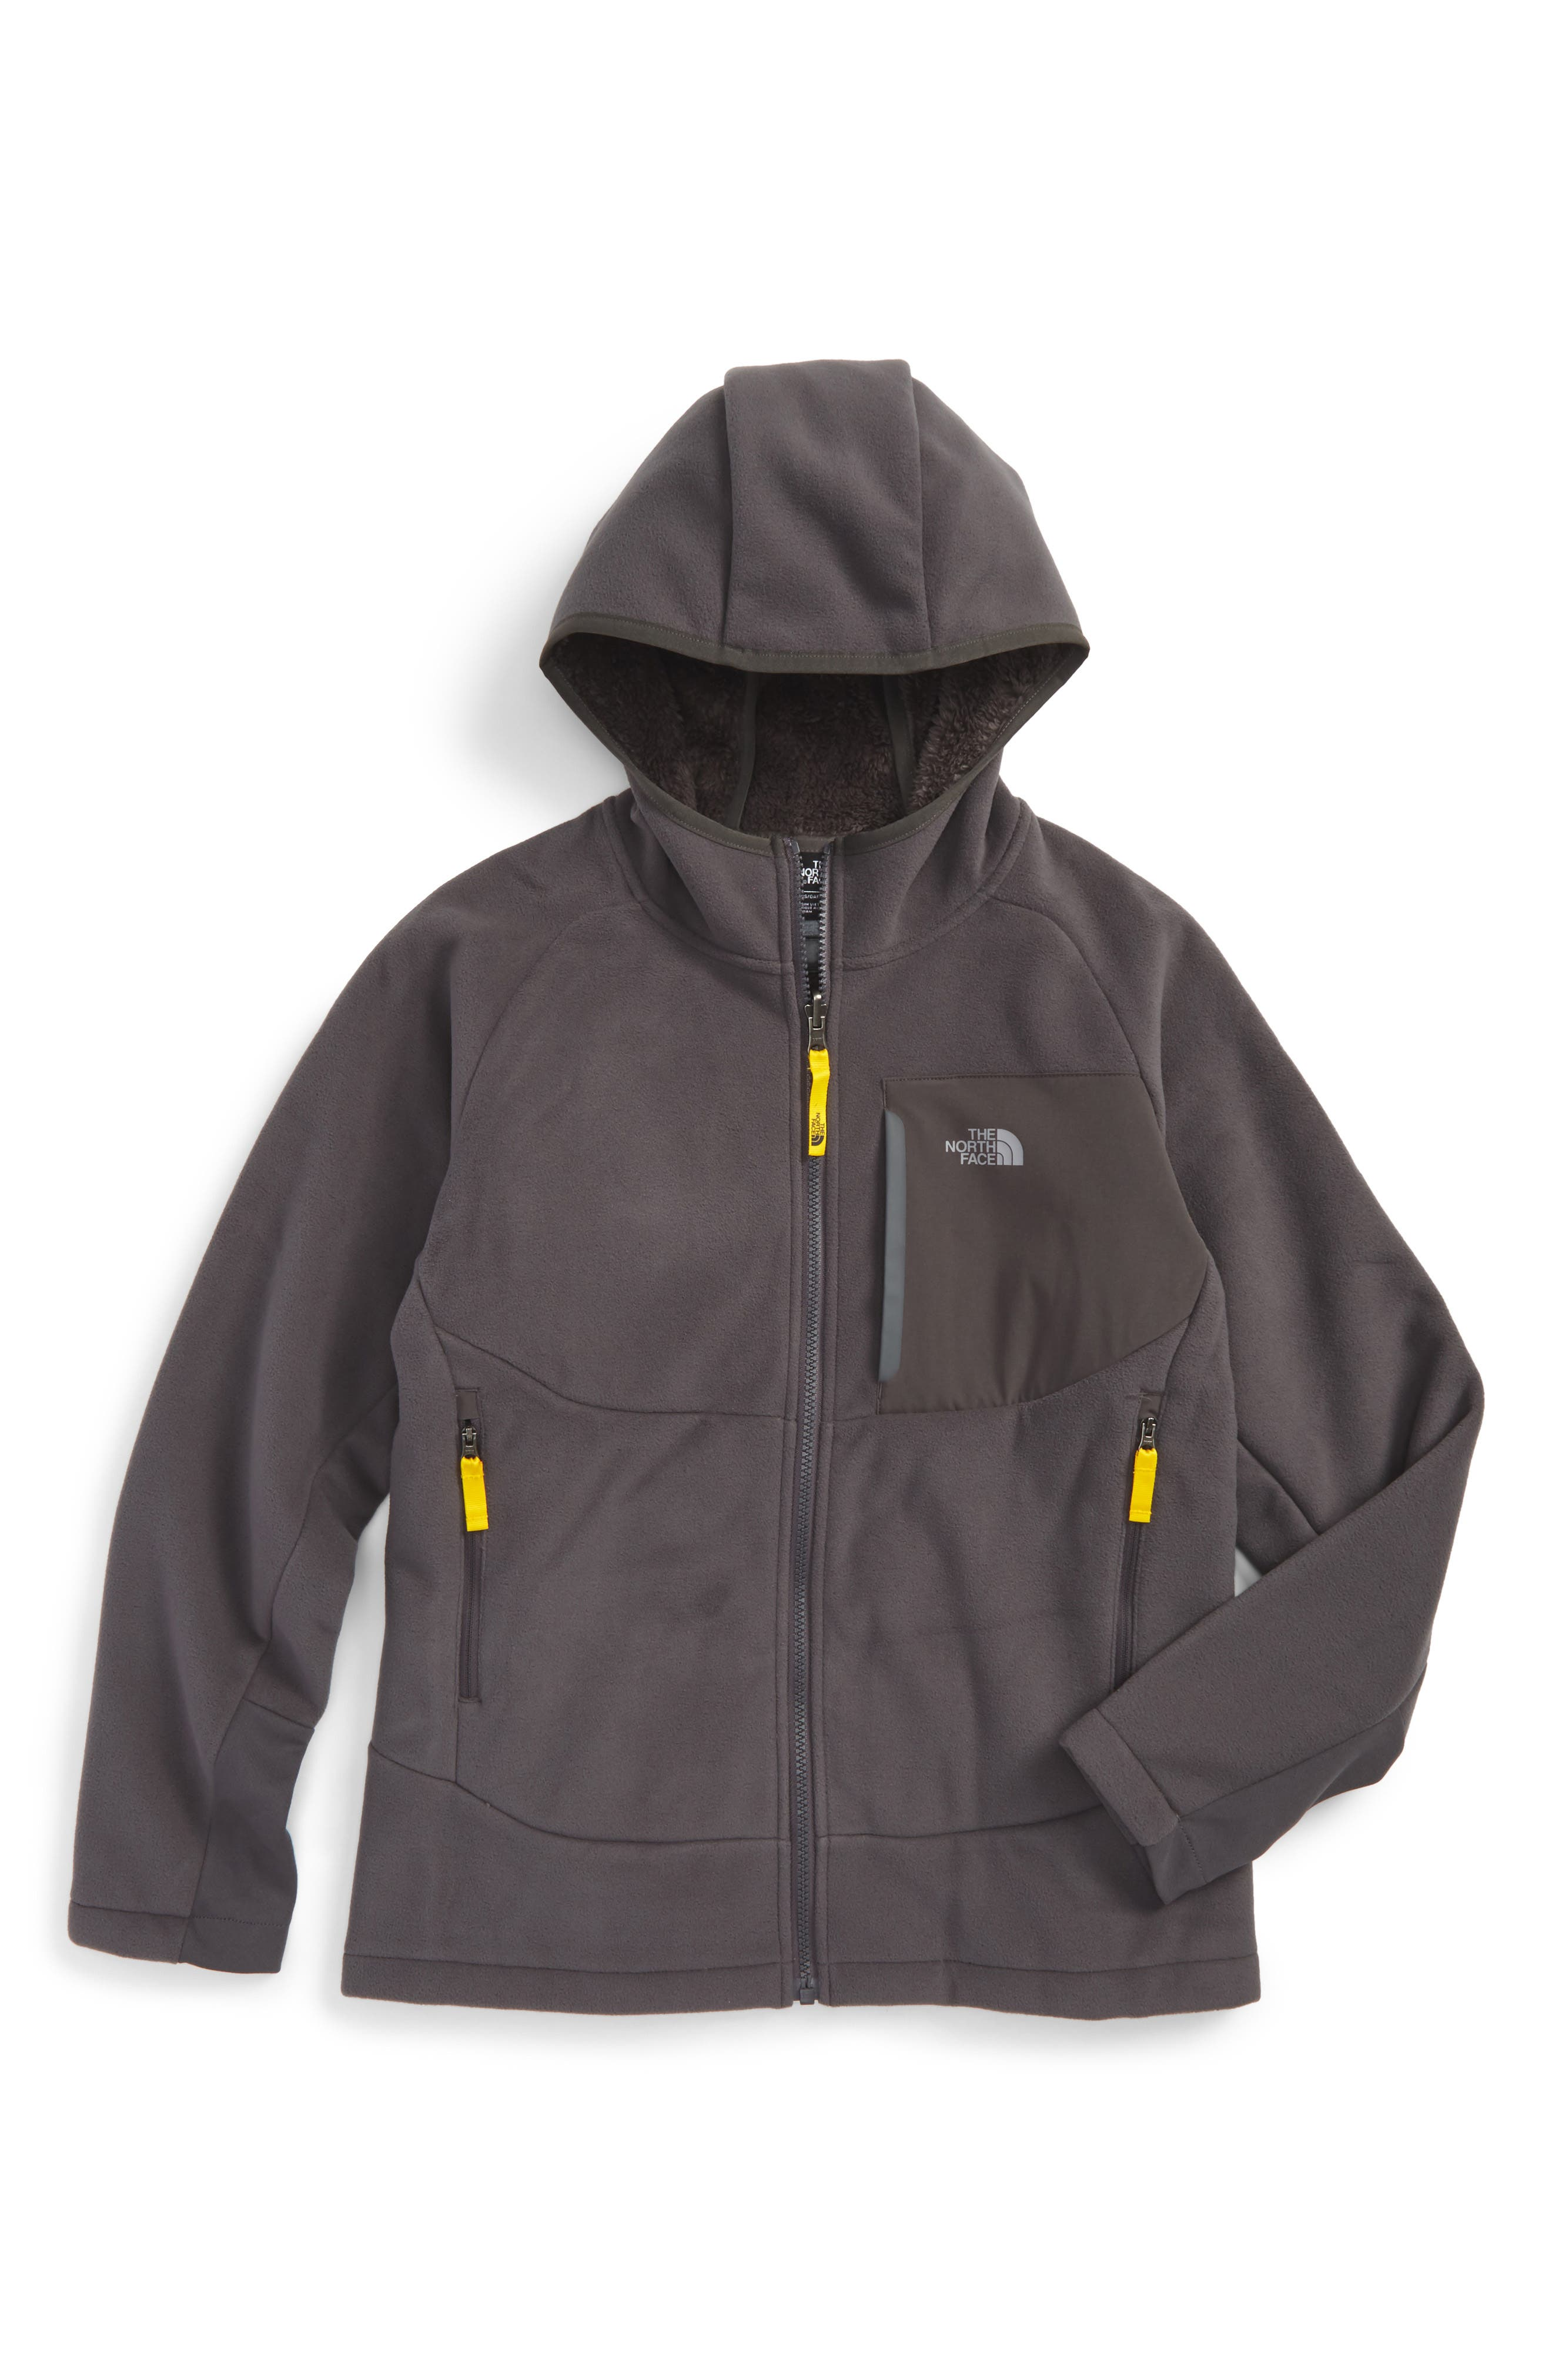 'Chimborazo' Hoodie,                         Main,                         color, Graphite Grey/ Canary Yellow